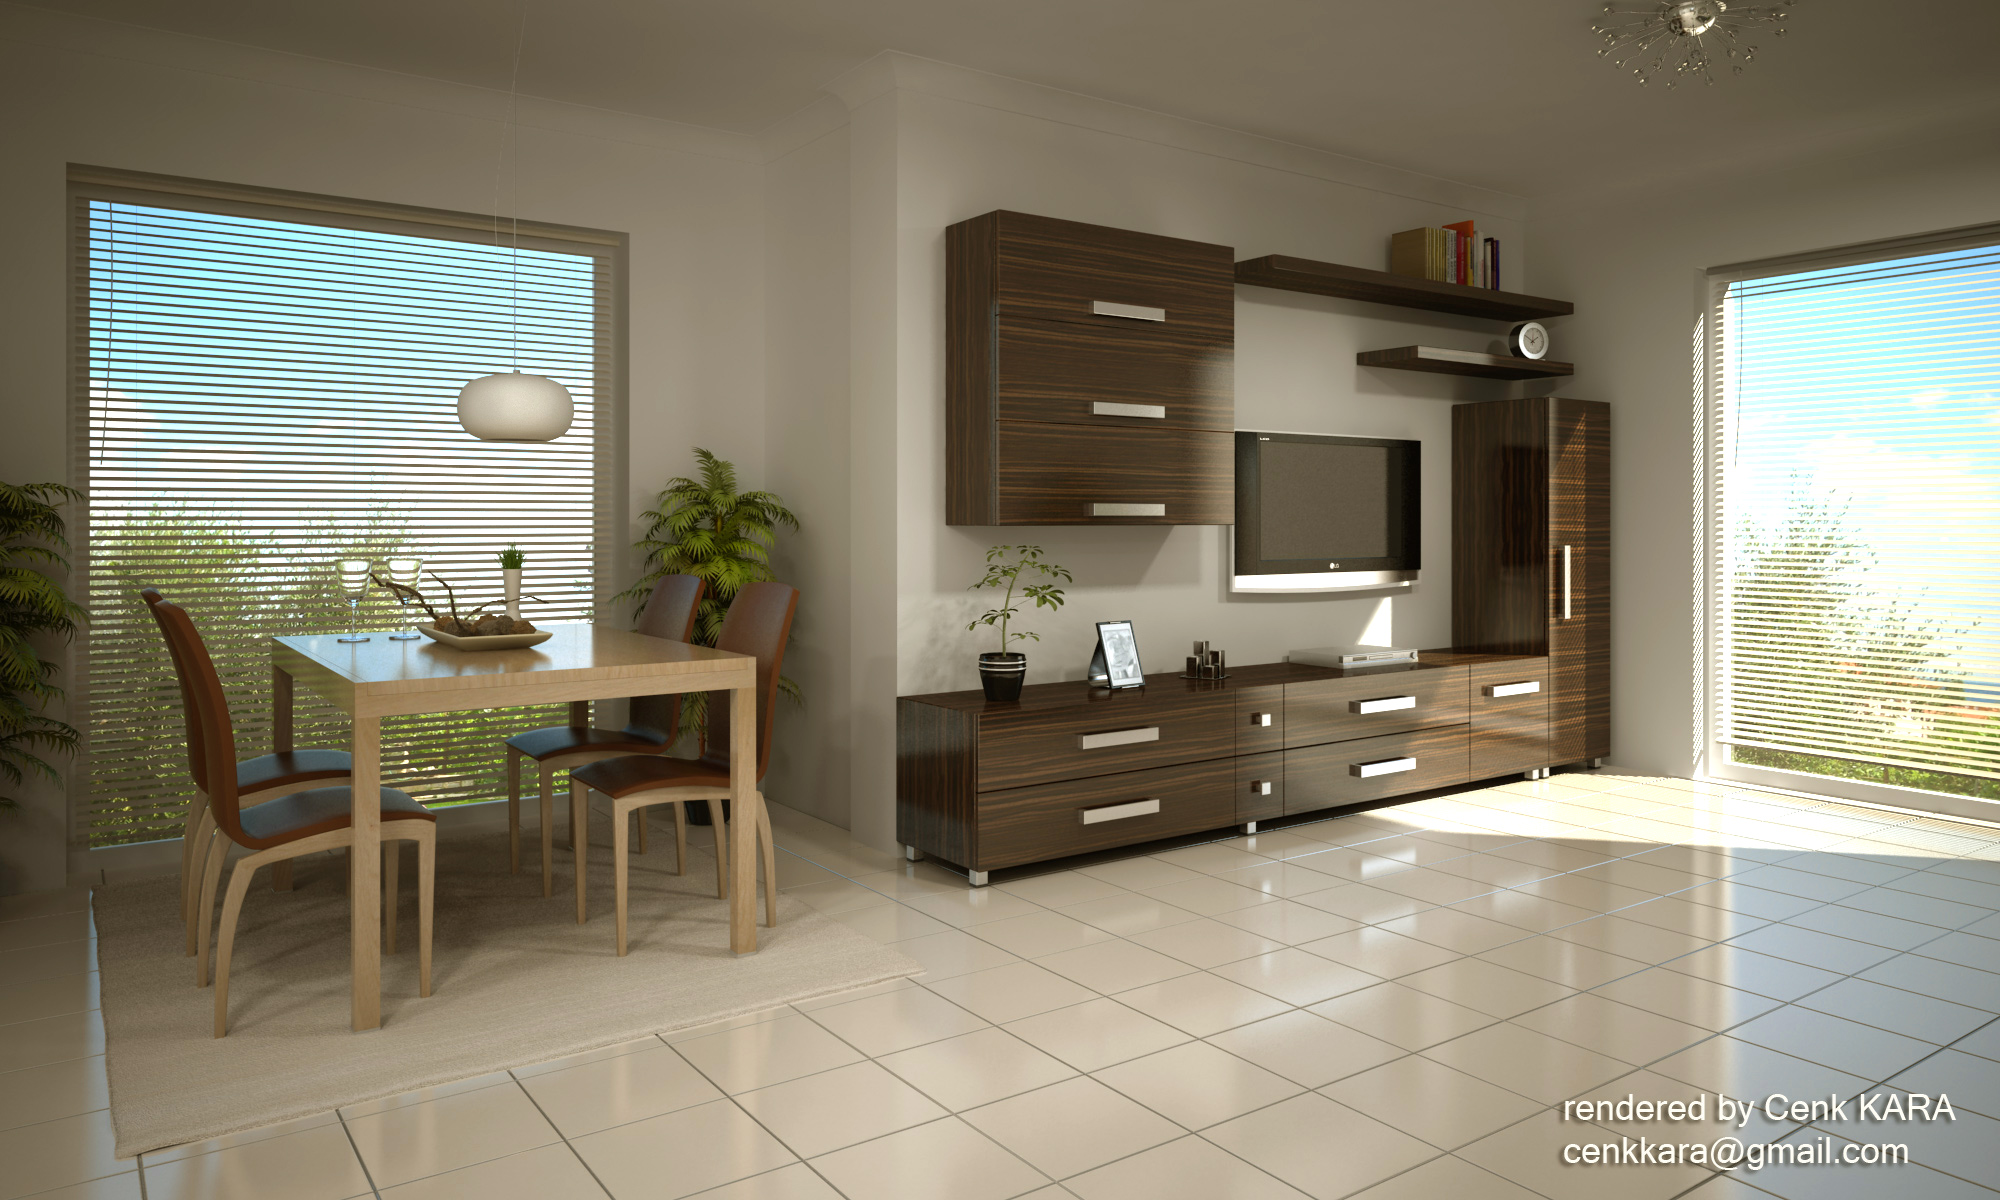 Kitchen Amp Living Room Rendering By Cenk Kara At Coroflot Com